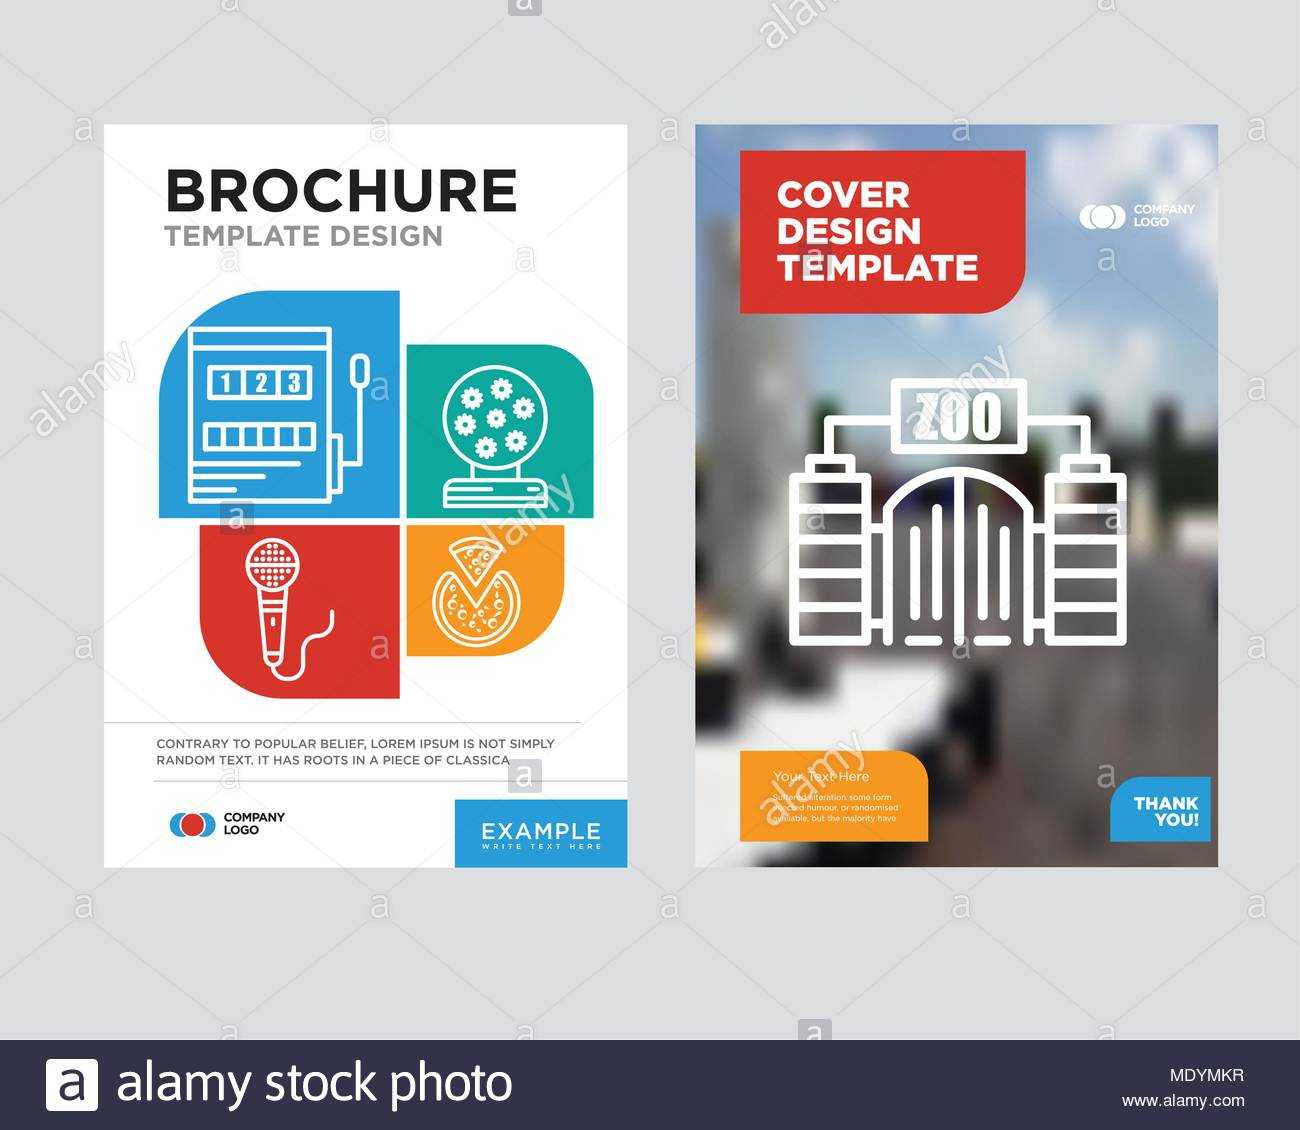 Zoo Brochure Flyer Design Template With Abstract Photo In Zoo Brochure Template